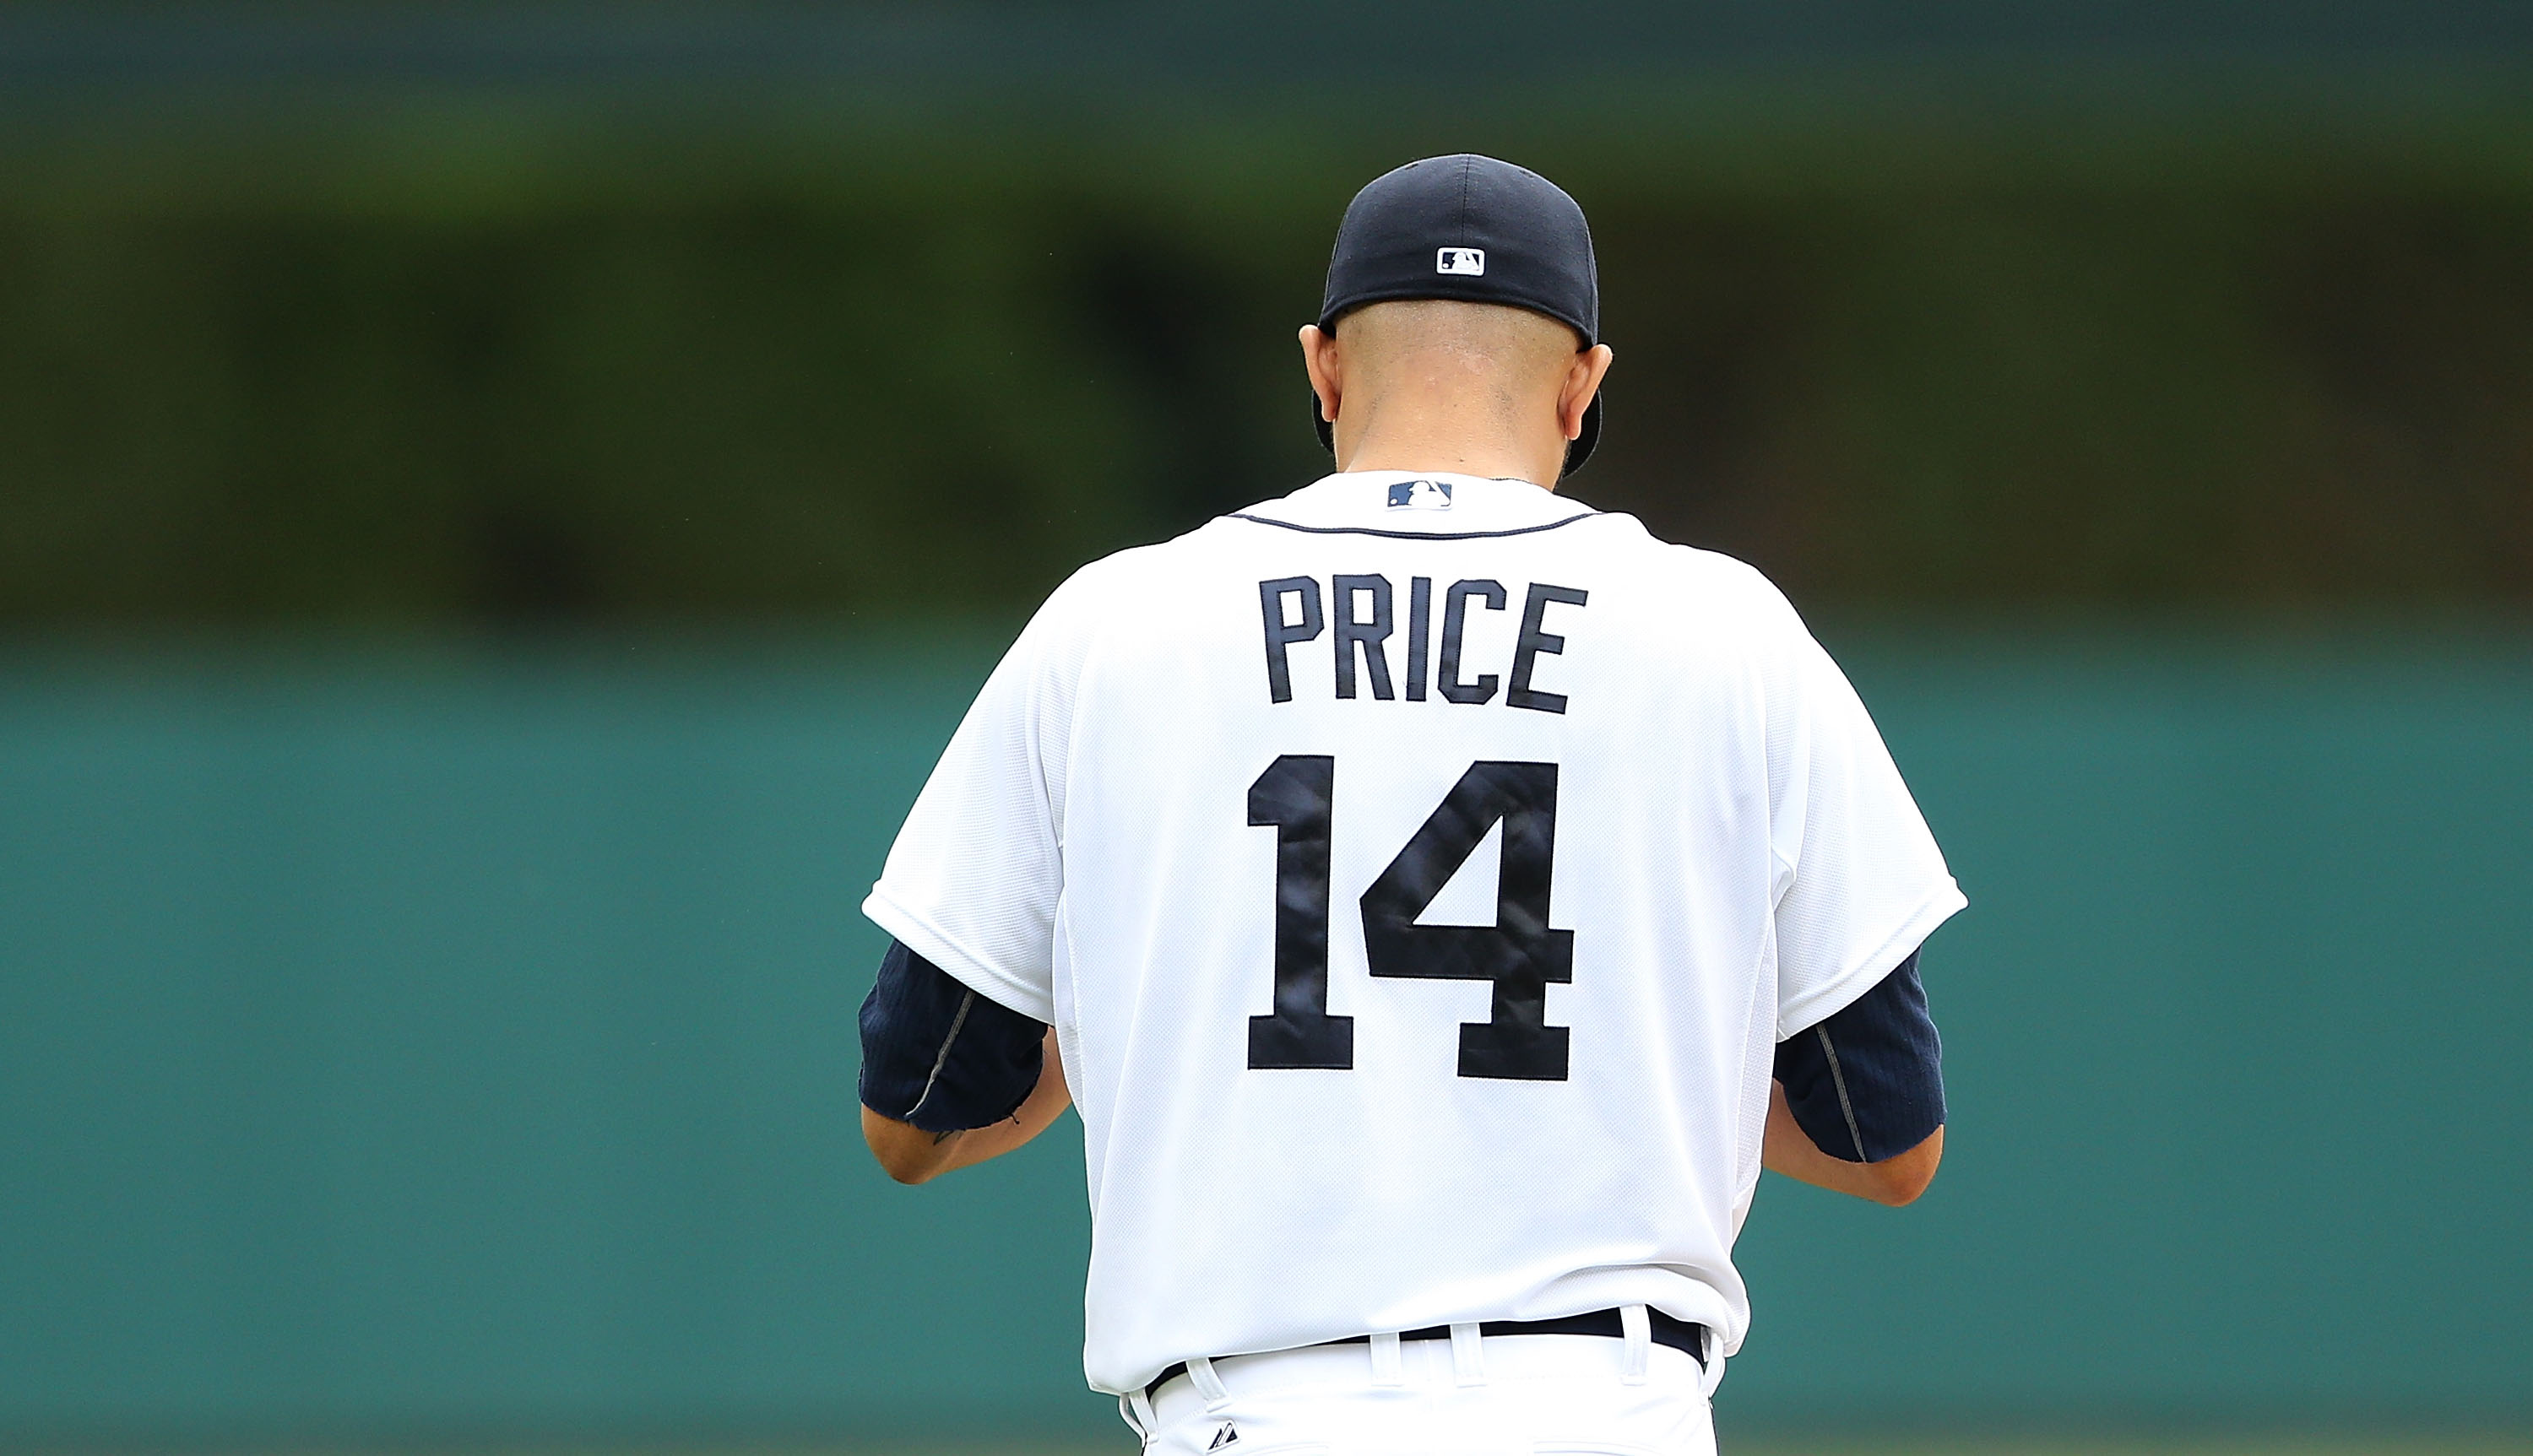 David Price avoids arbitration with Tigers, signs for record $19.75 million